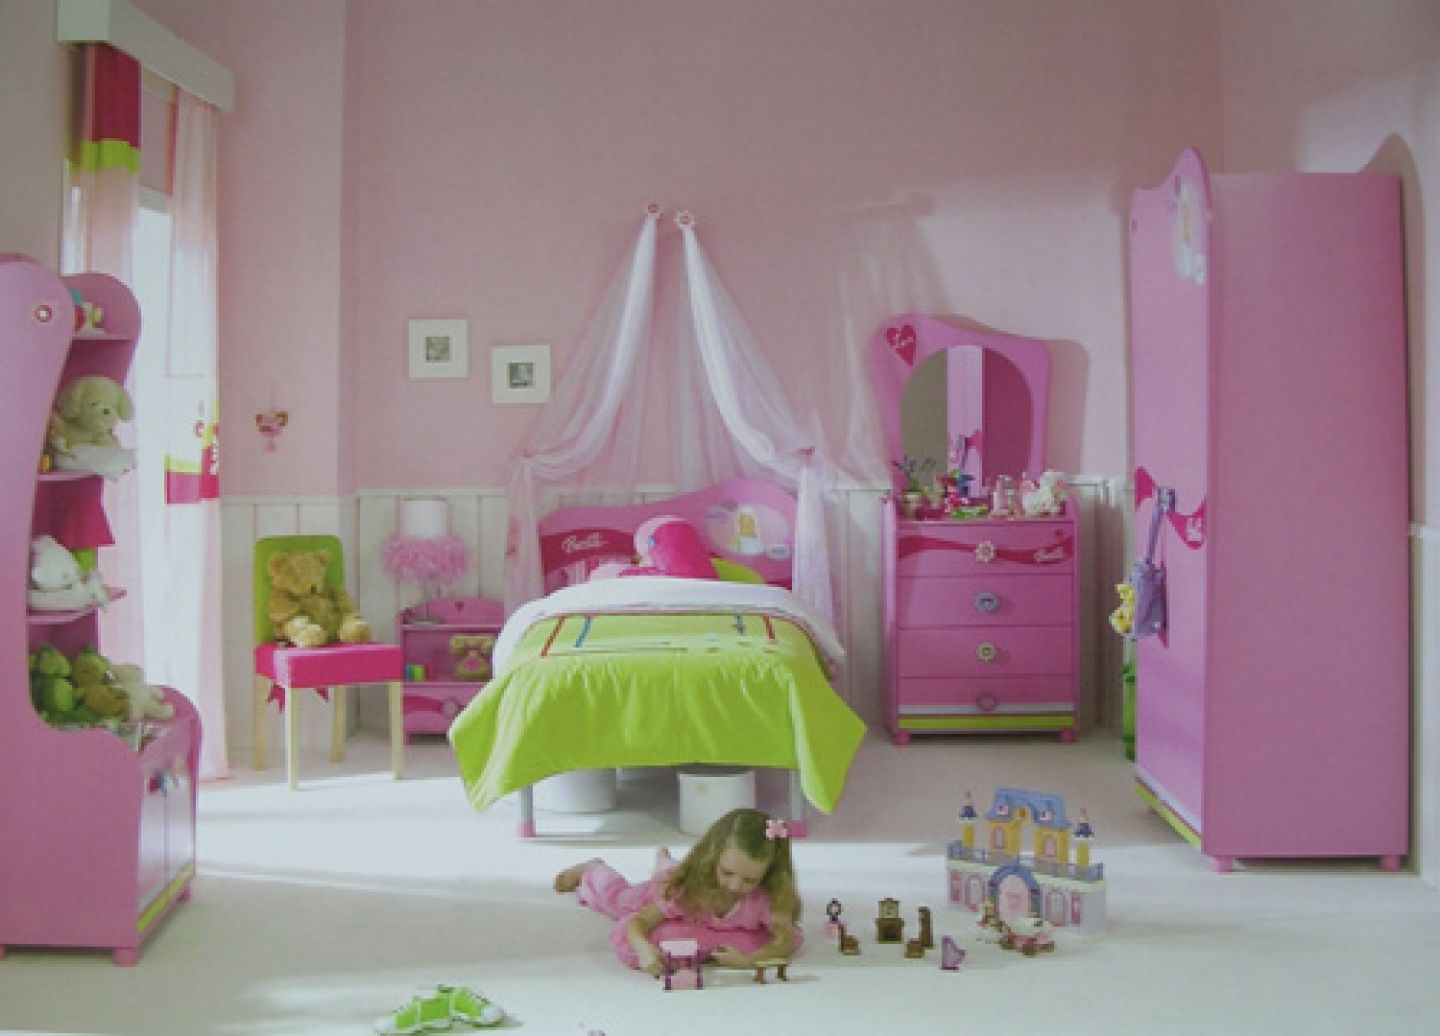 kids bedroom ideas kids bedroom pinky decoration inspiration girls bedroom sets decorating ideas for little - Decoration For Girl Bedroom